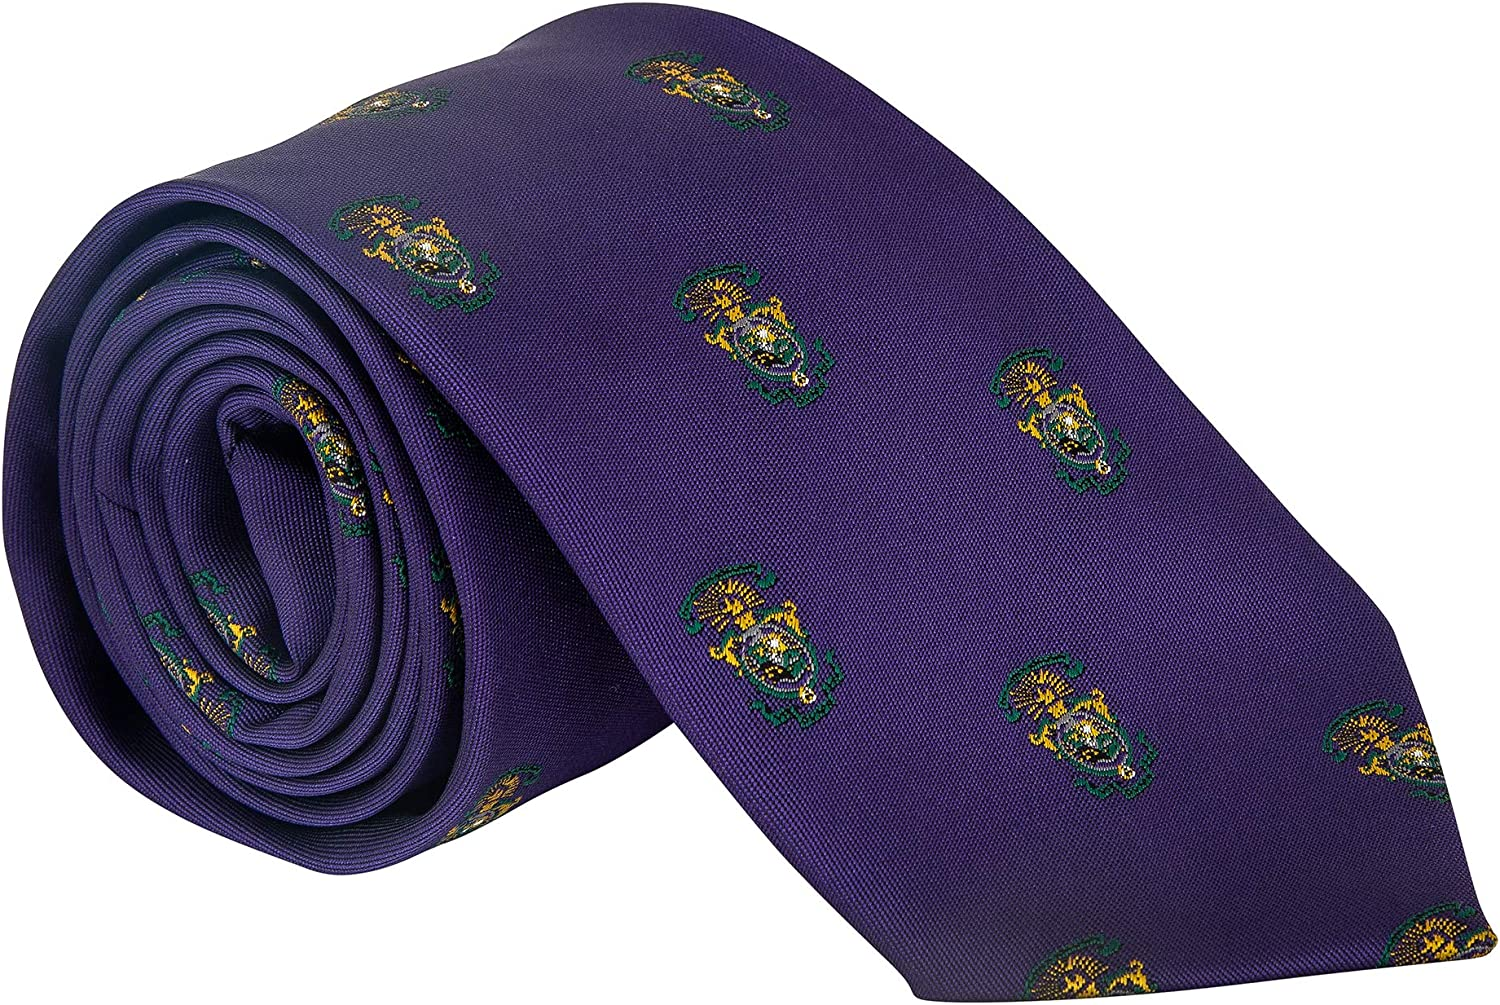 Lambda Chi Alpha Fraternity Necktie Tie Greek Occasion Formal Same day shipping St 70% OFF Outlet